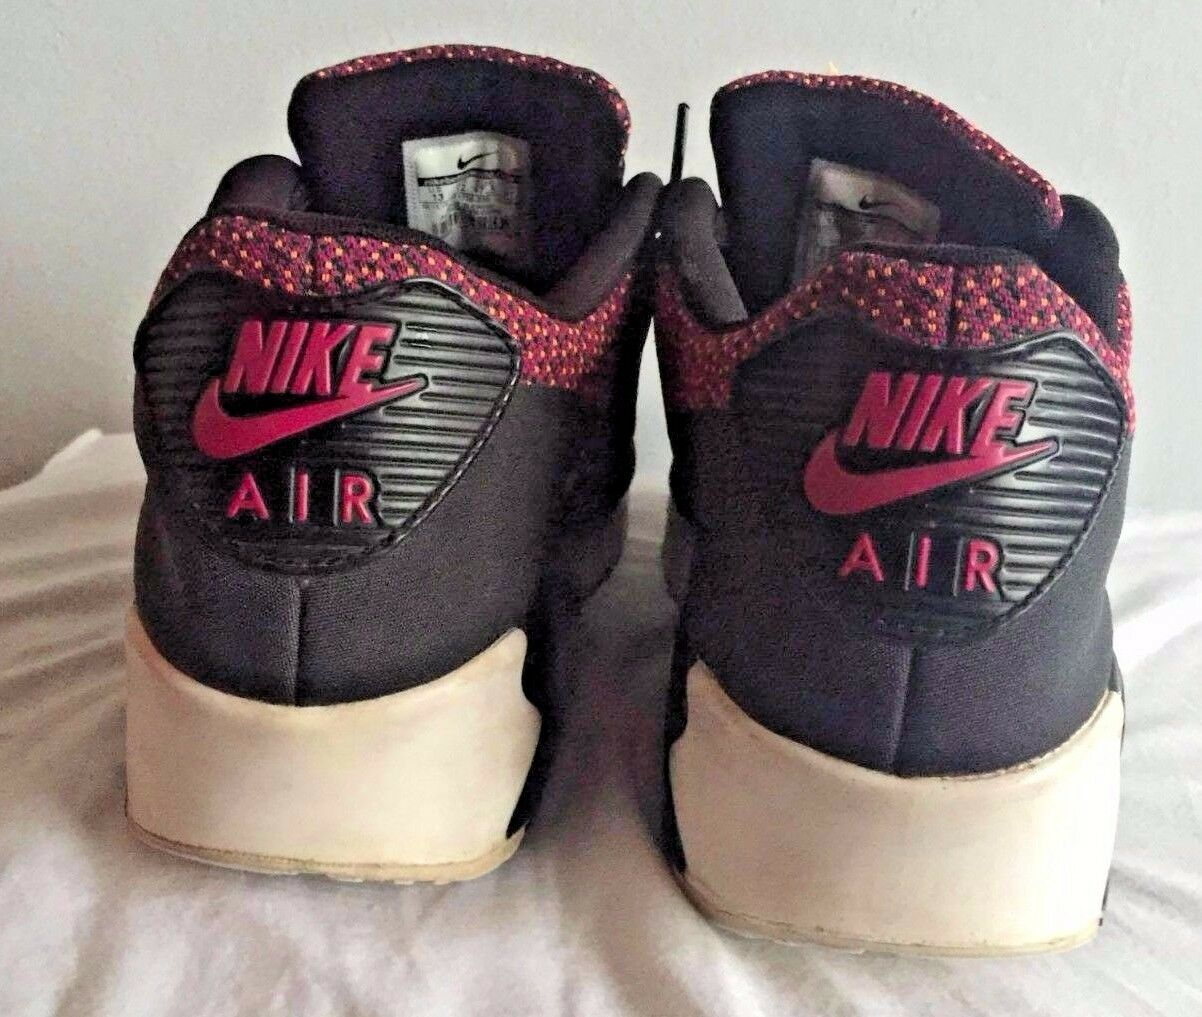 NIKE AIR MAX 90 JACQUARD MAGENTA BLACK 13 ORANGE ANTHRACITE Rare Size 13 BLACK 4a3909